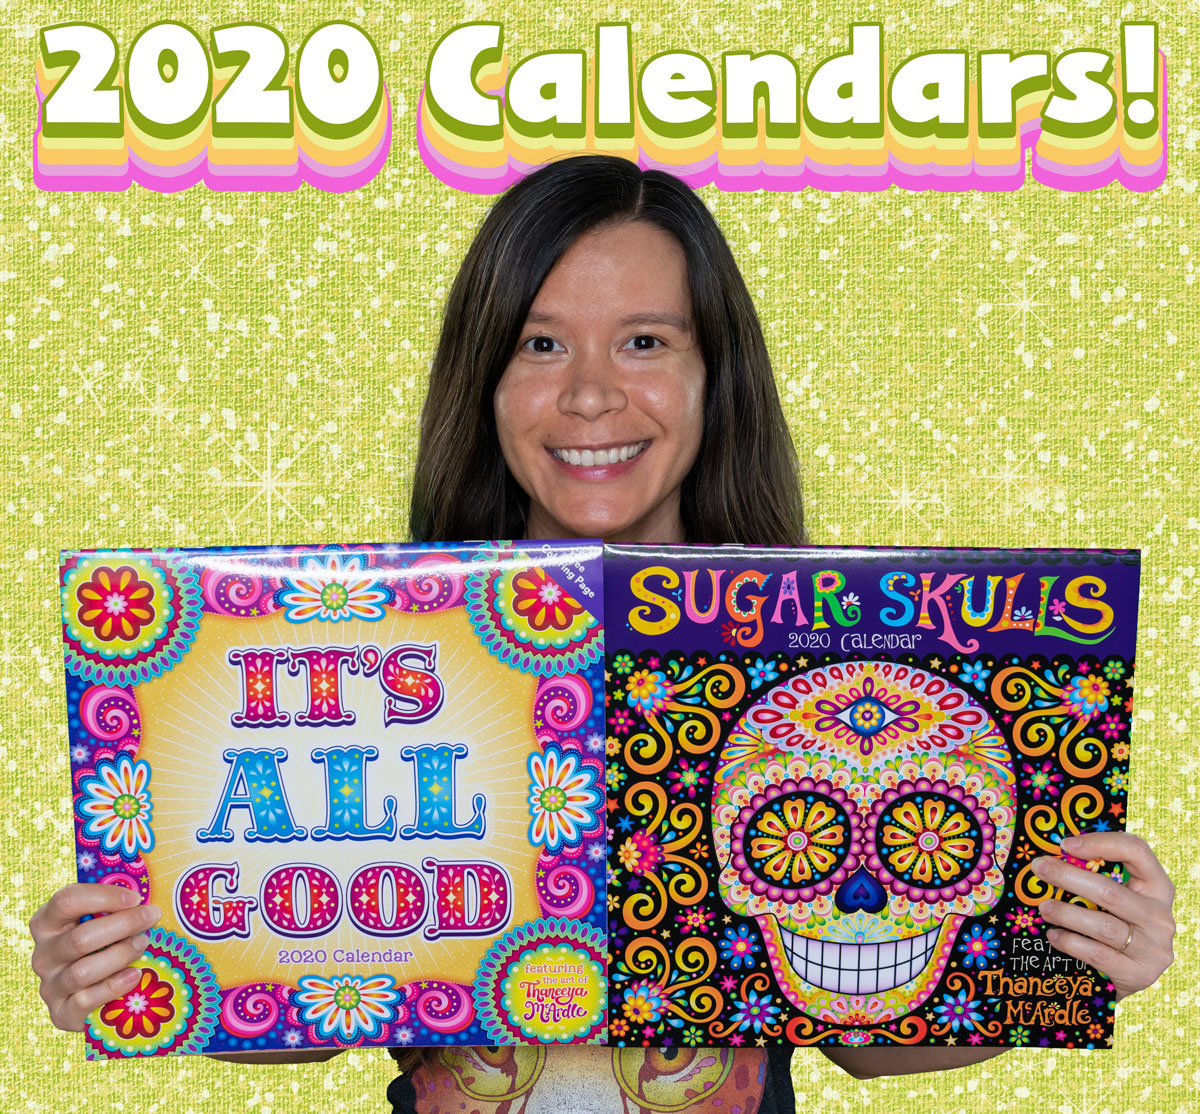 It's All Good 2020 Calendar and Sugar Skulls 2020 Calendar by Thaneeya McArdle